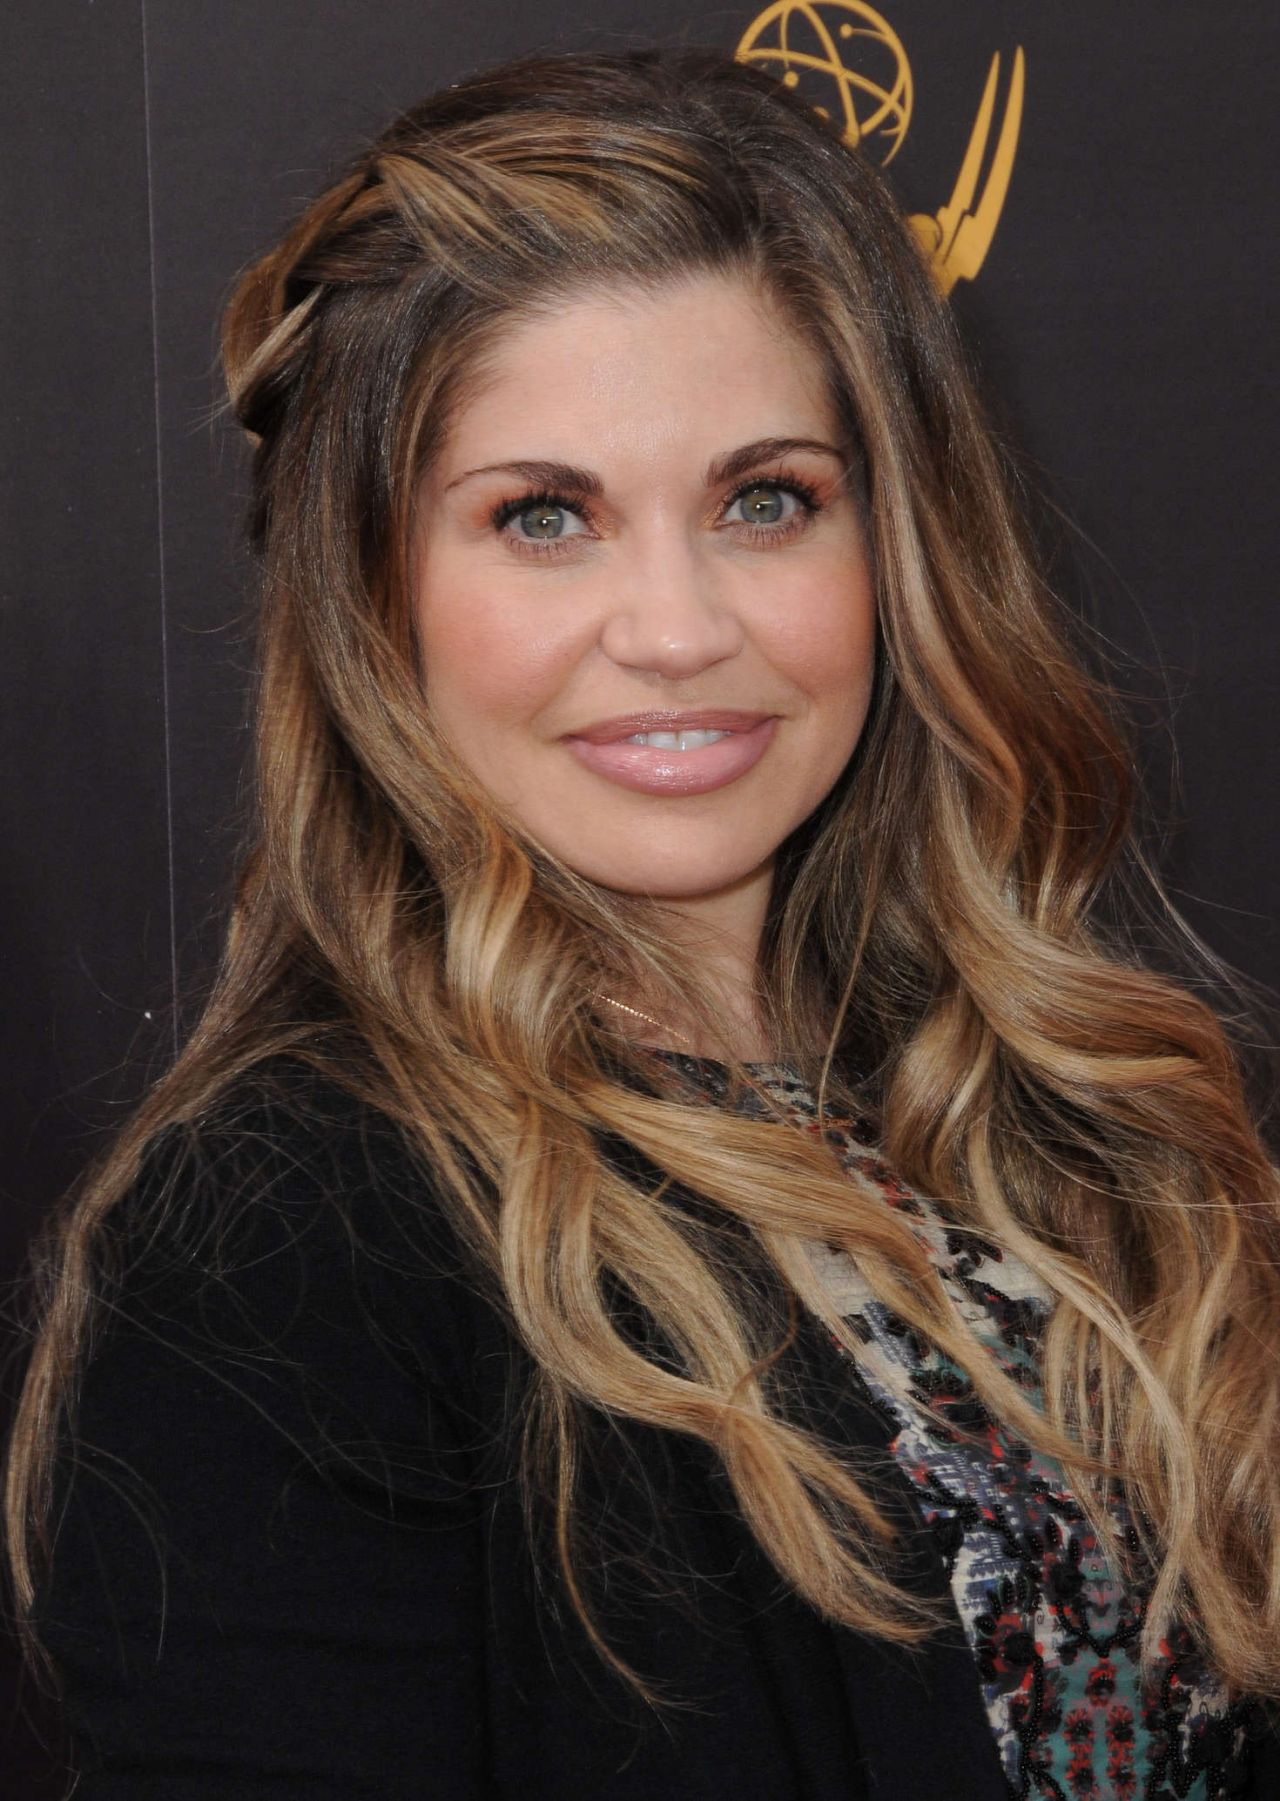 Danielle Fishel Latest Photos Celebmafia